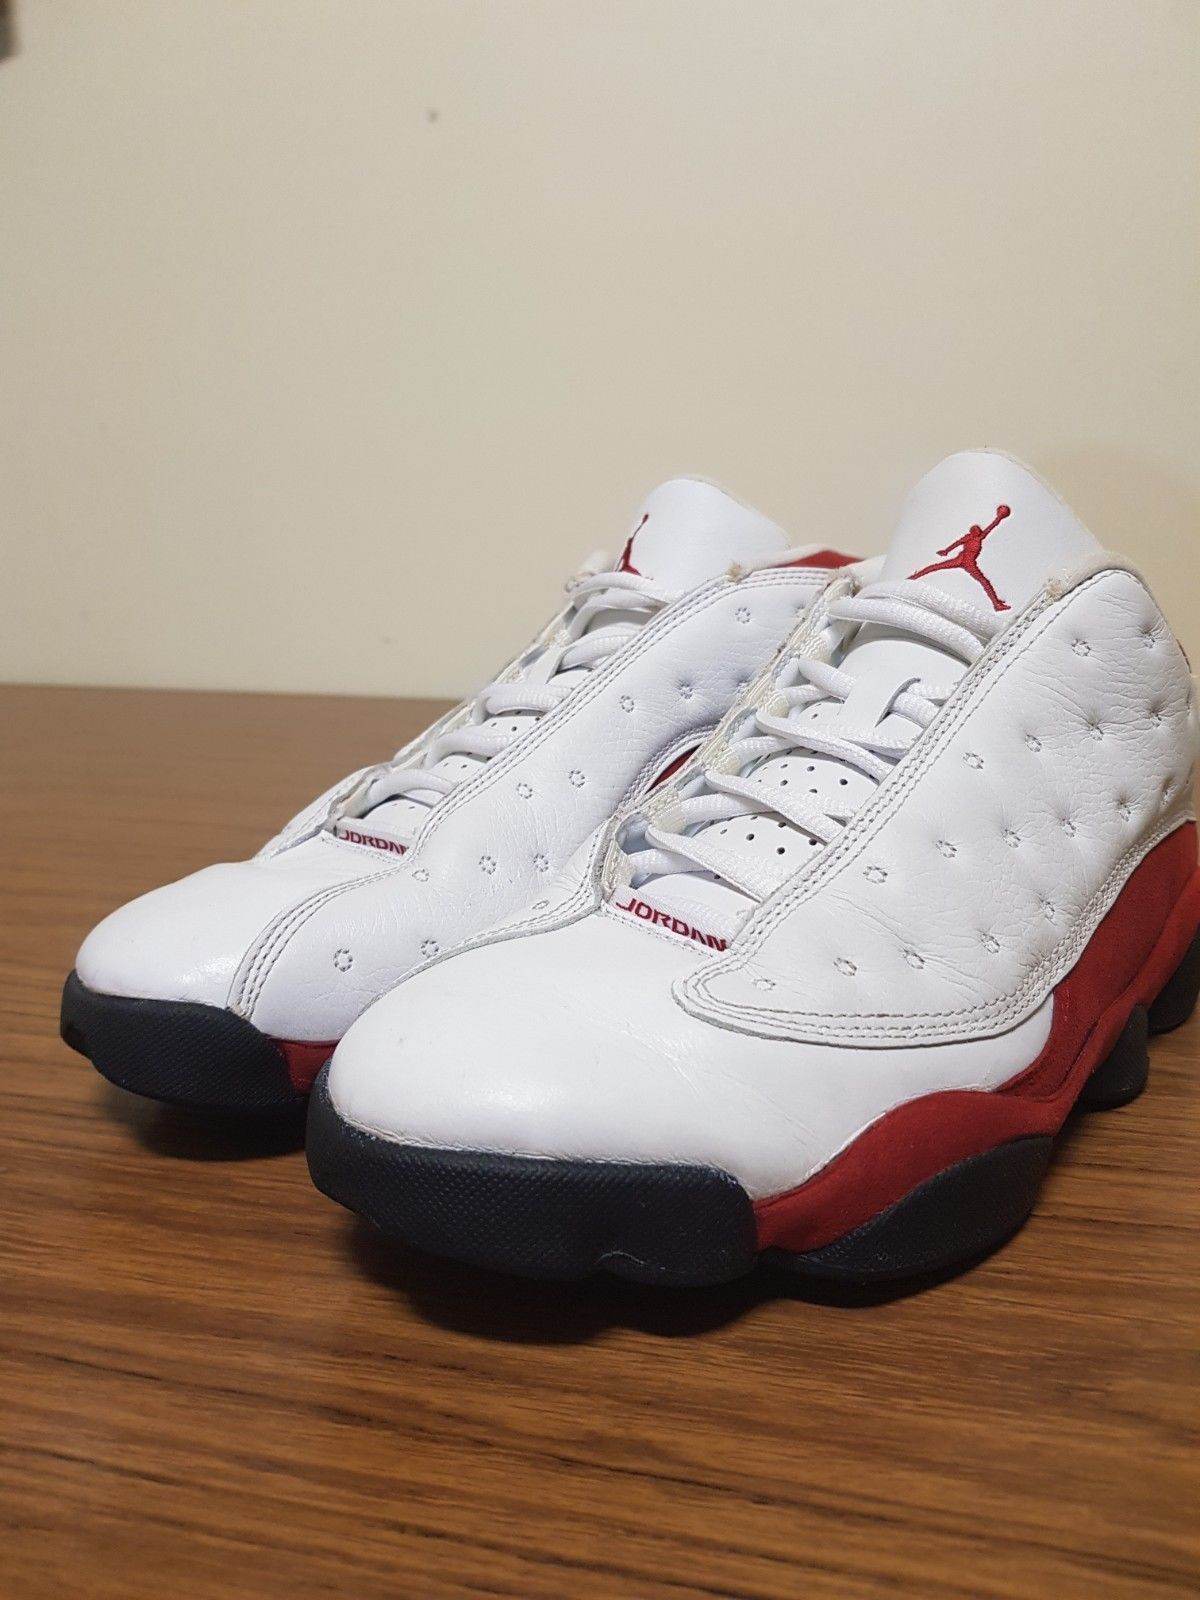 b25466a1689007 Nike Air Jordan 13 Retro Low Mens Basketball Shoes Size US 9 USED (Red